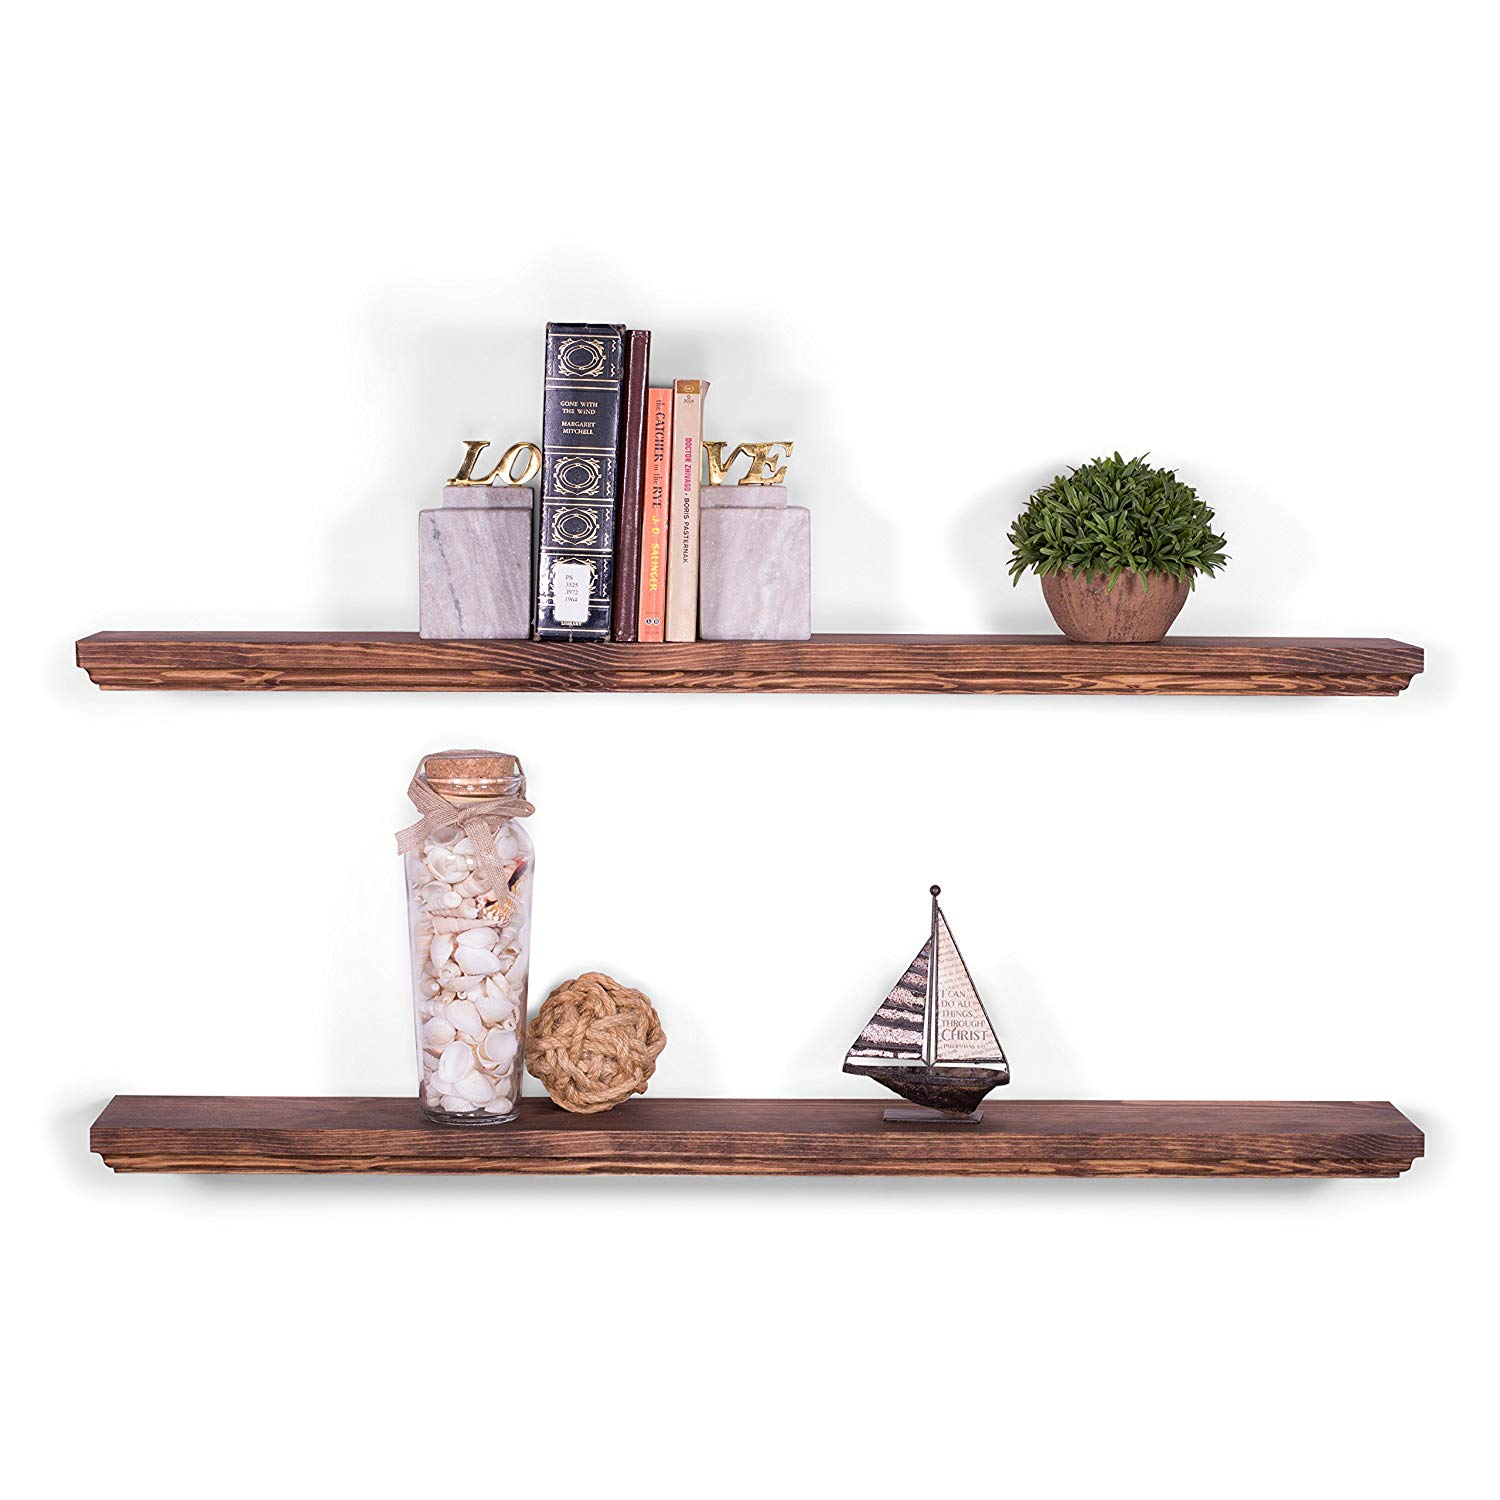 dakoda love deep routed edge floating shelves usa the shelf company reviews handmade clear coat finish countersunk hidden brackets beautiful grain pine solid oak cube shelving